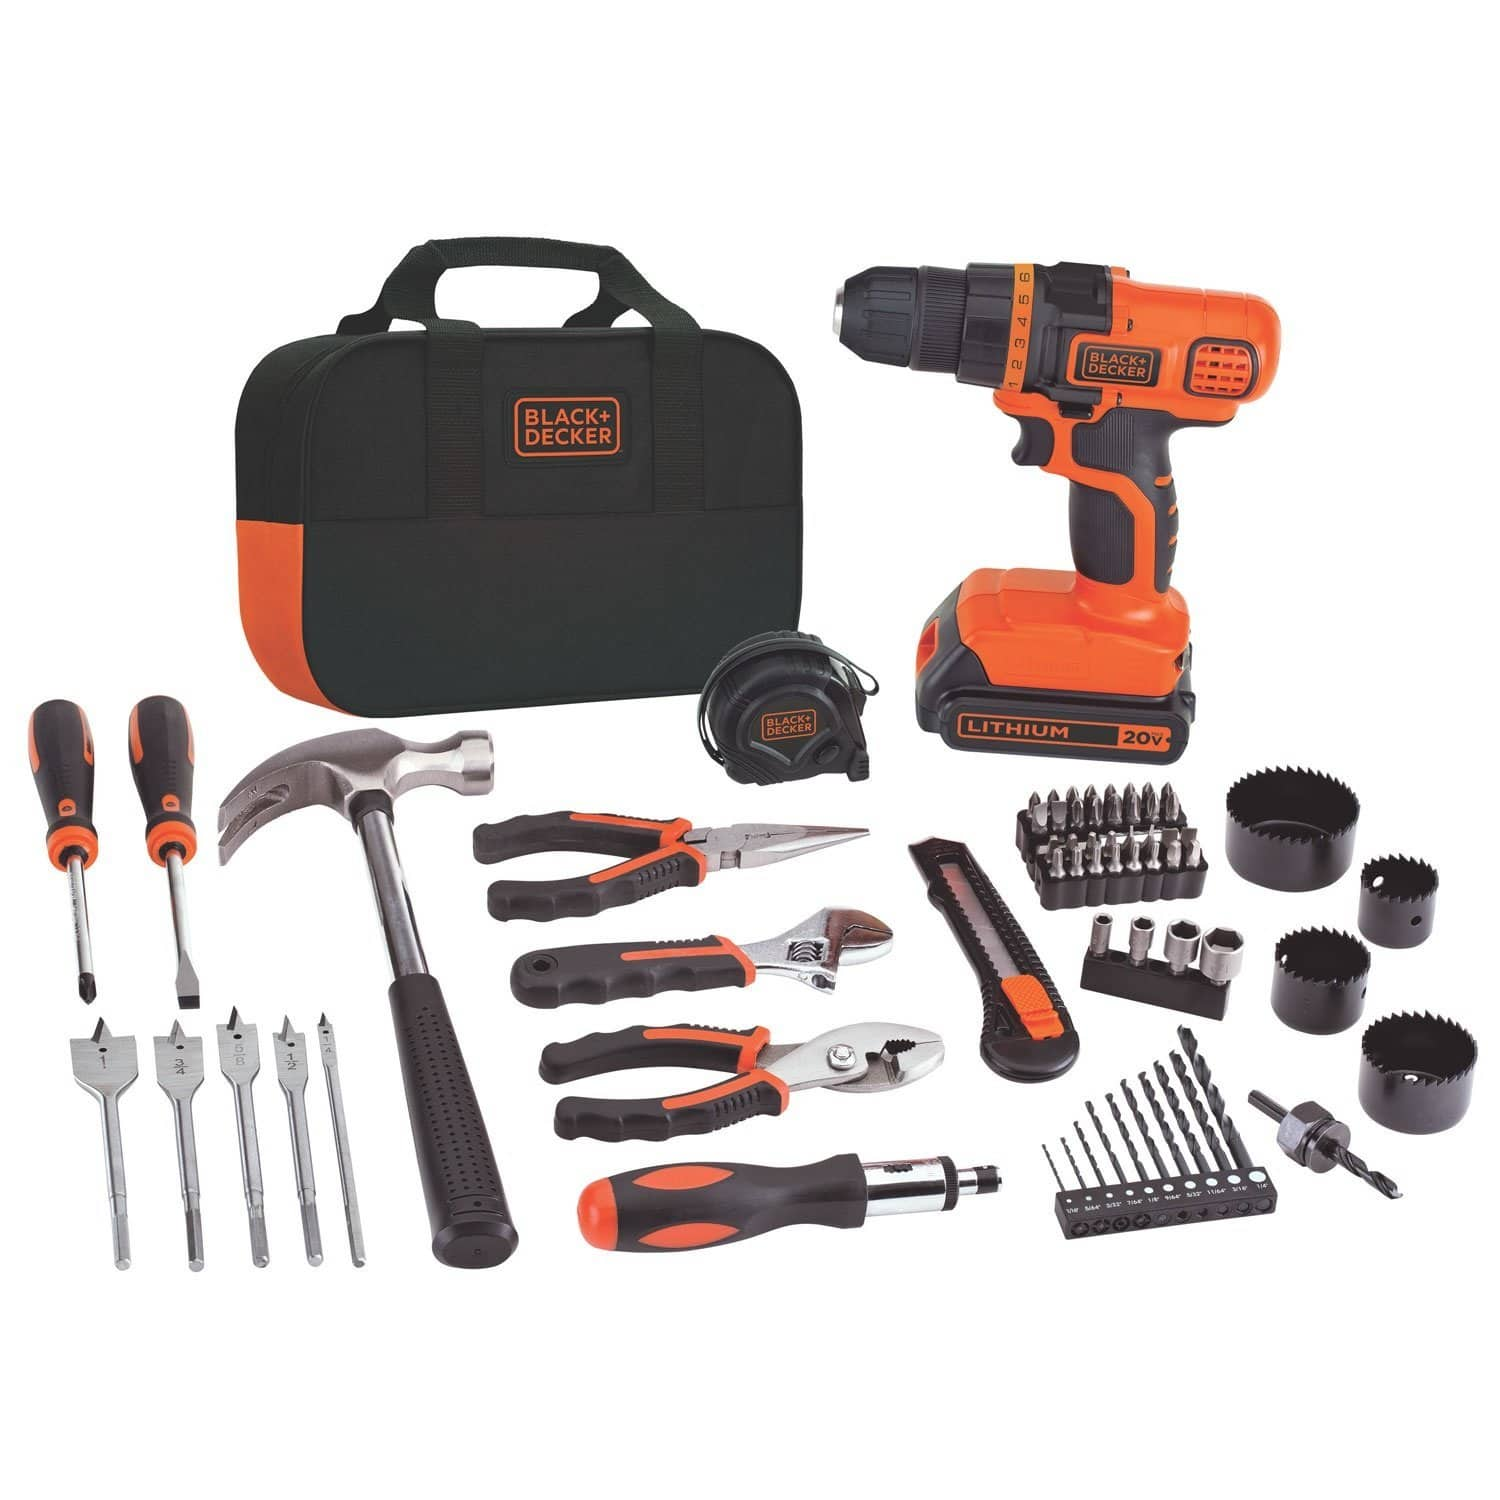 Black & Decker 20-Volt Max Lithium-Ion Drill and Project Kit (LDX120PK)  $60 + Free Shipping